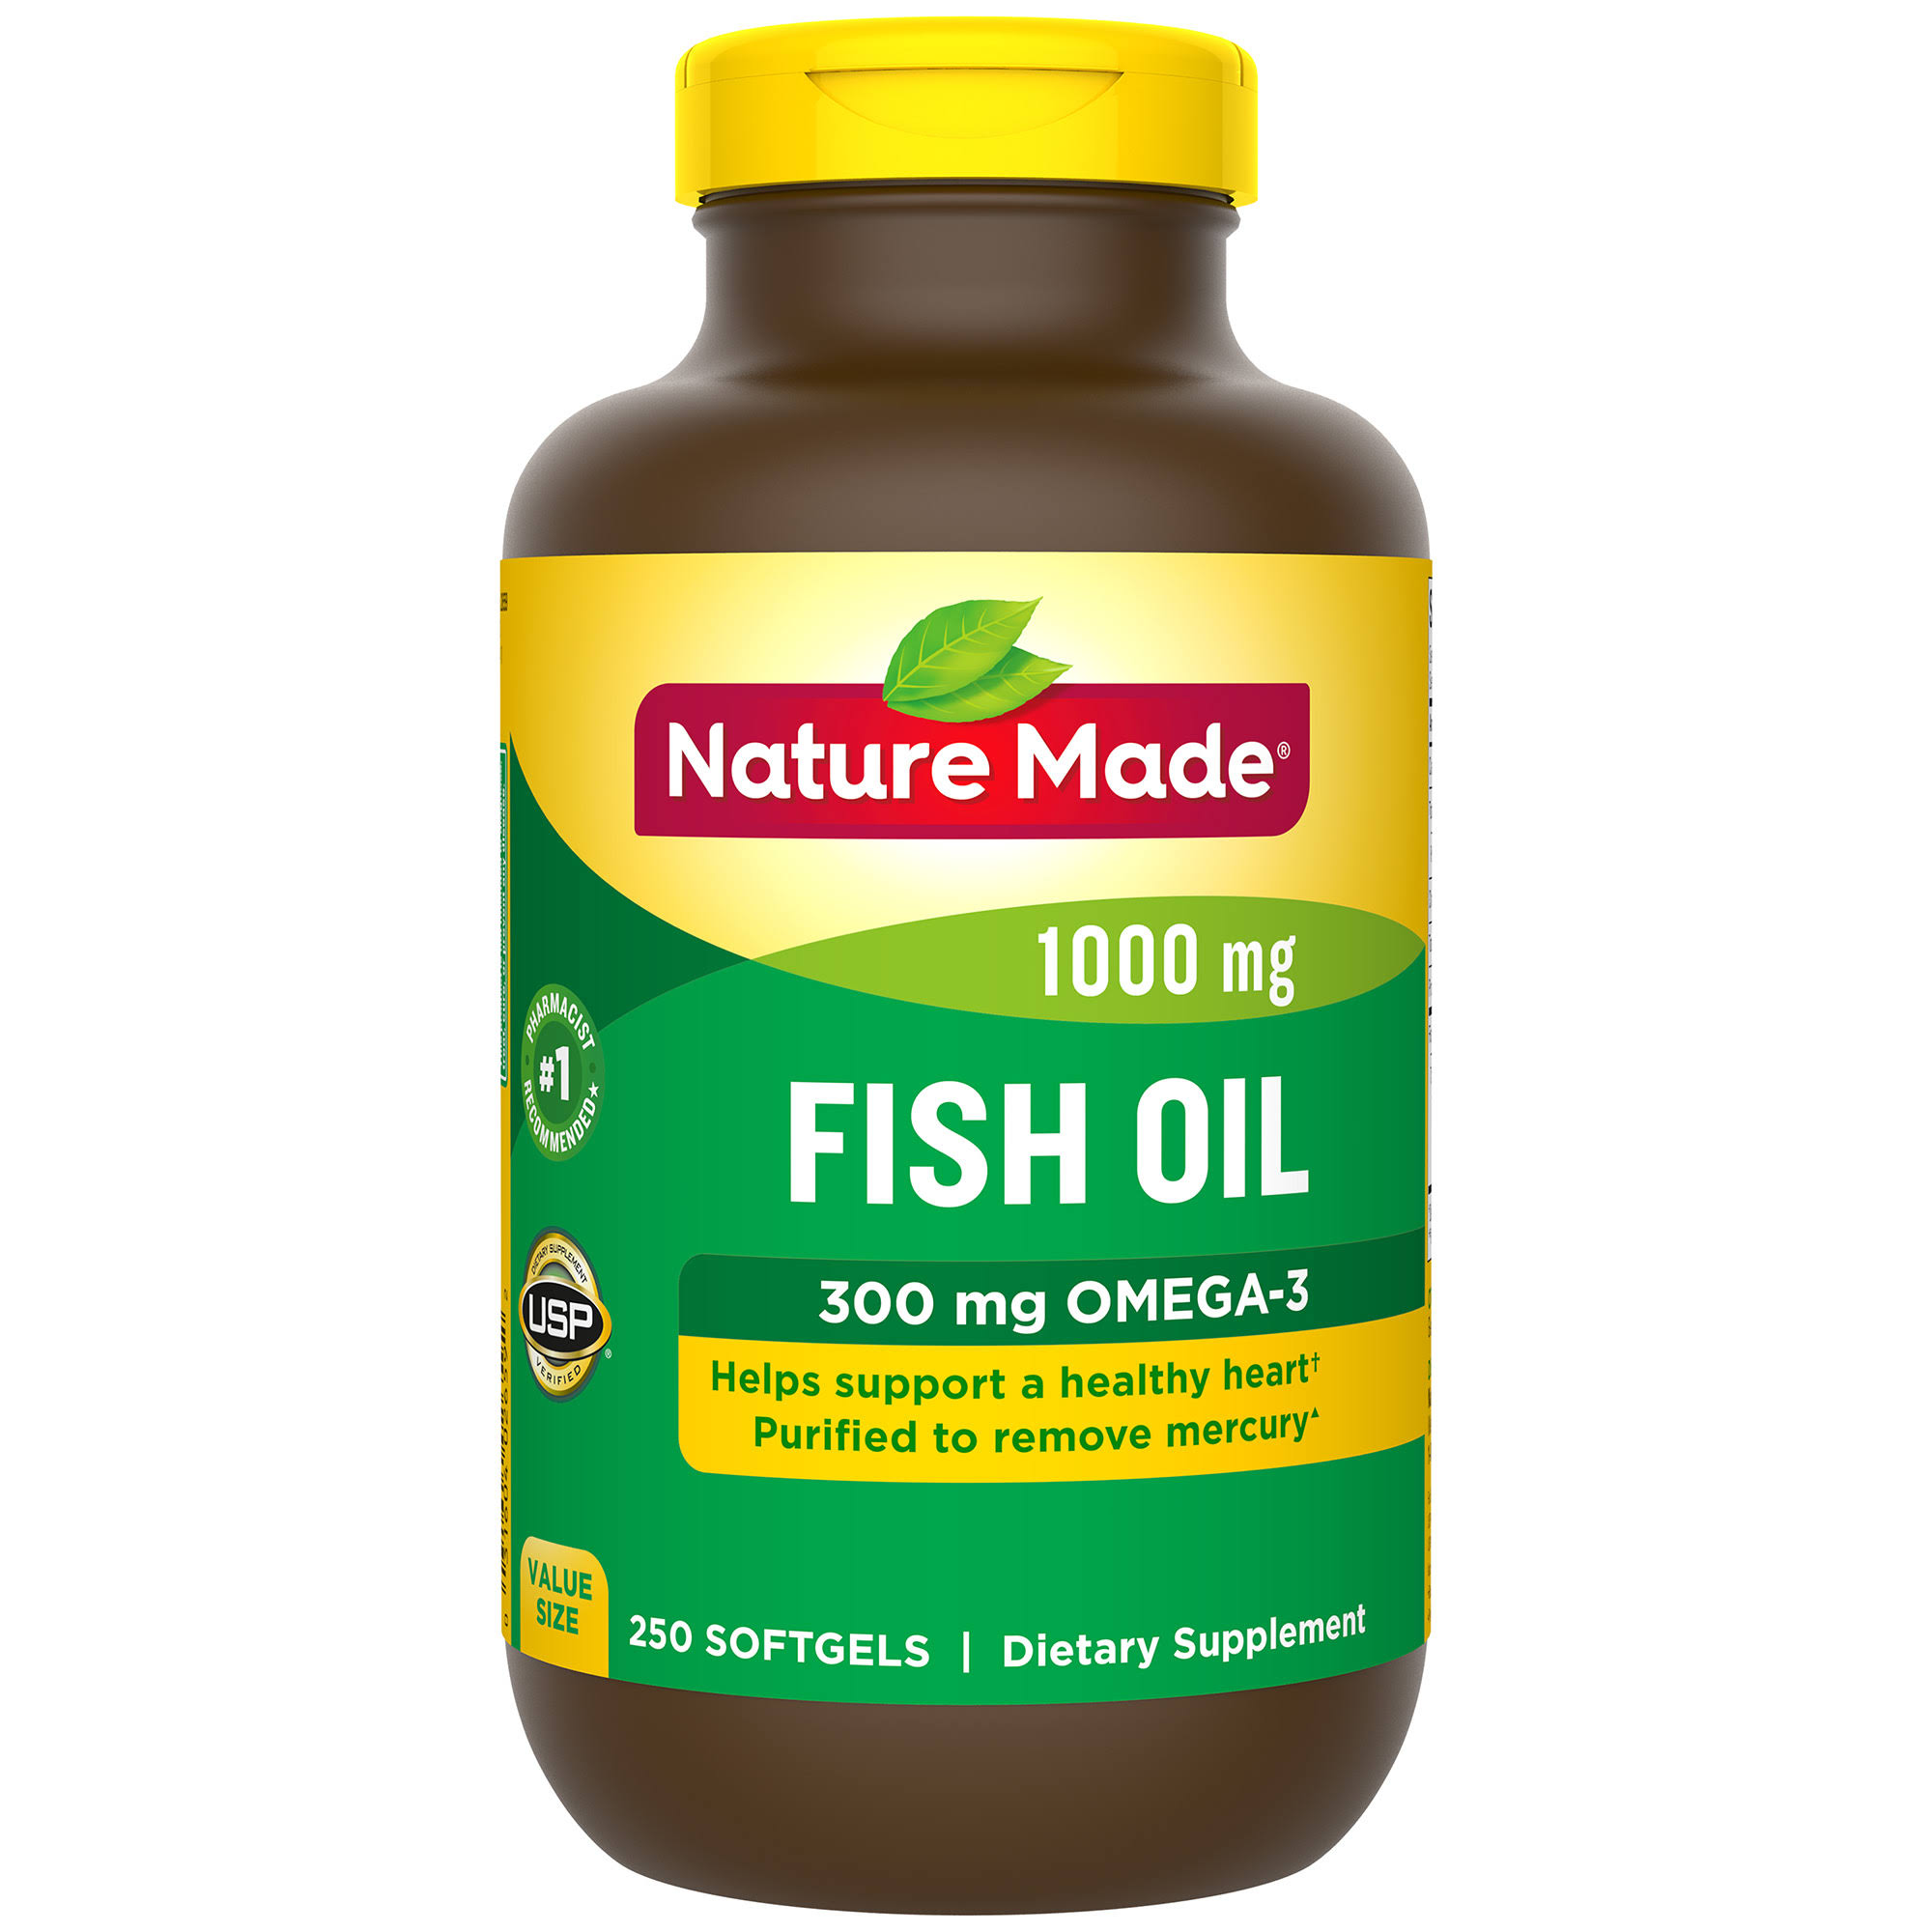 Nature Made Fish Oil Dietary Supplement - 1000mg, Value Size, Softgels, 250ct